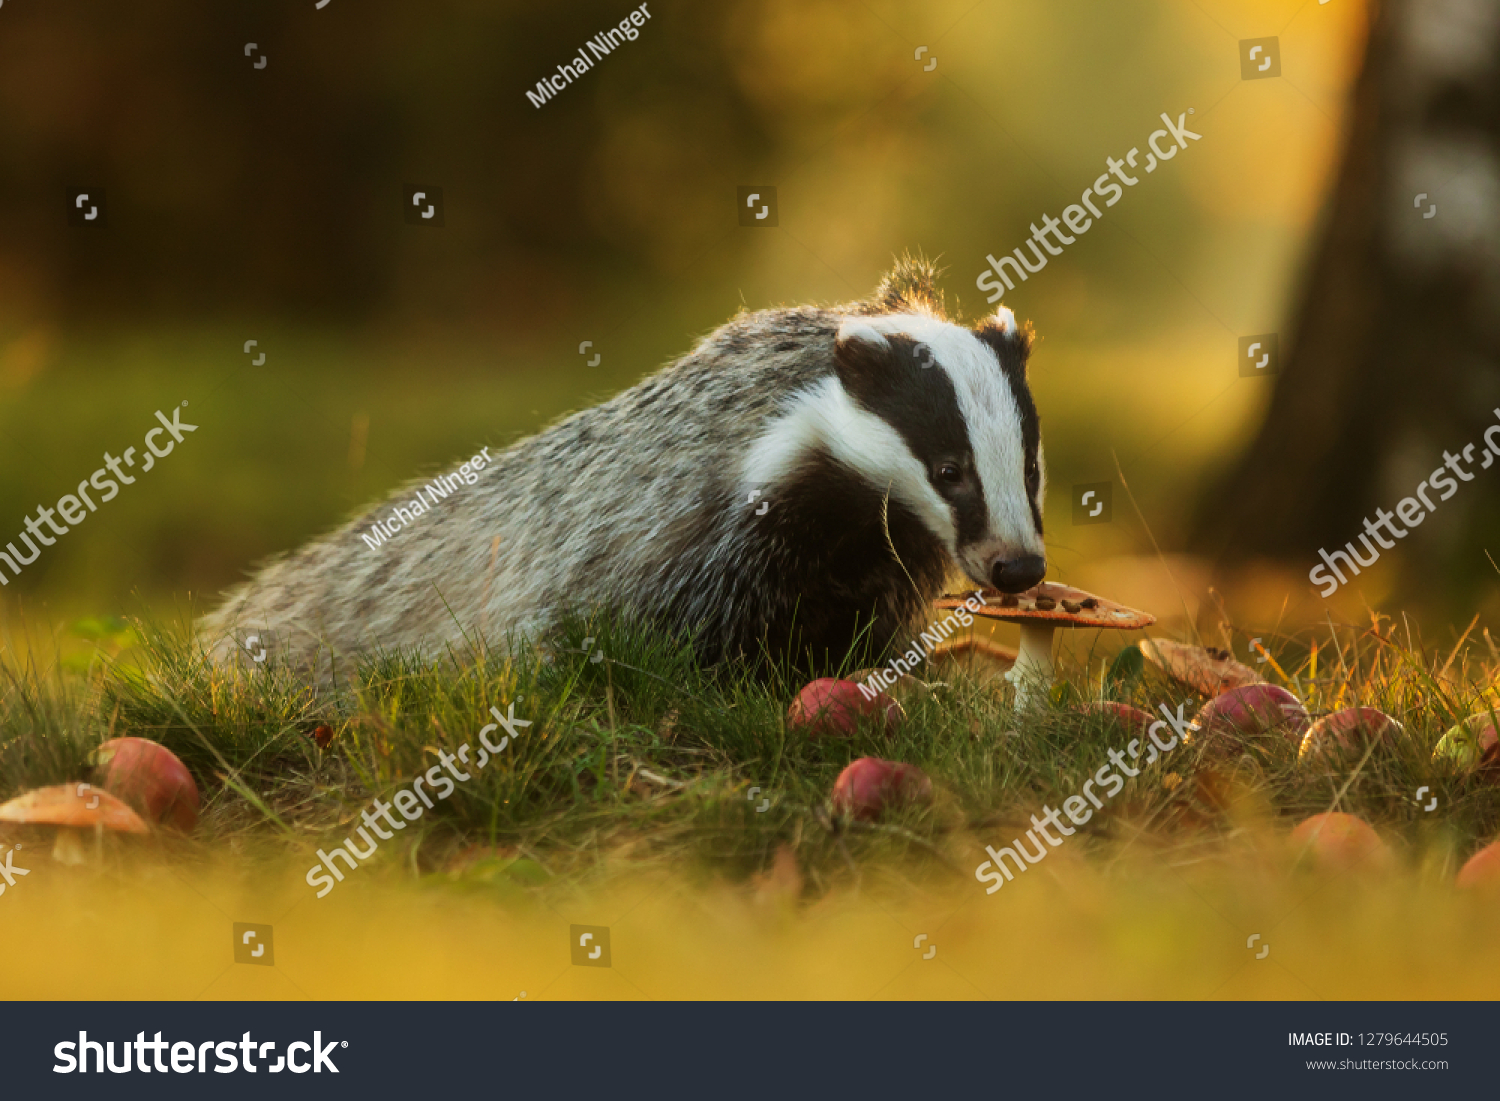 stock-photo-european-badger-meles-meles-